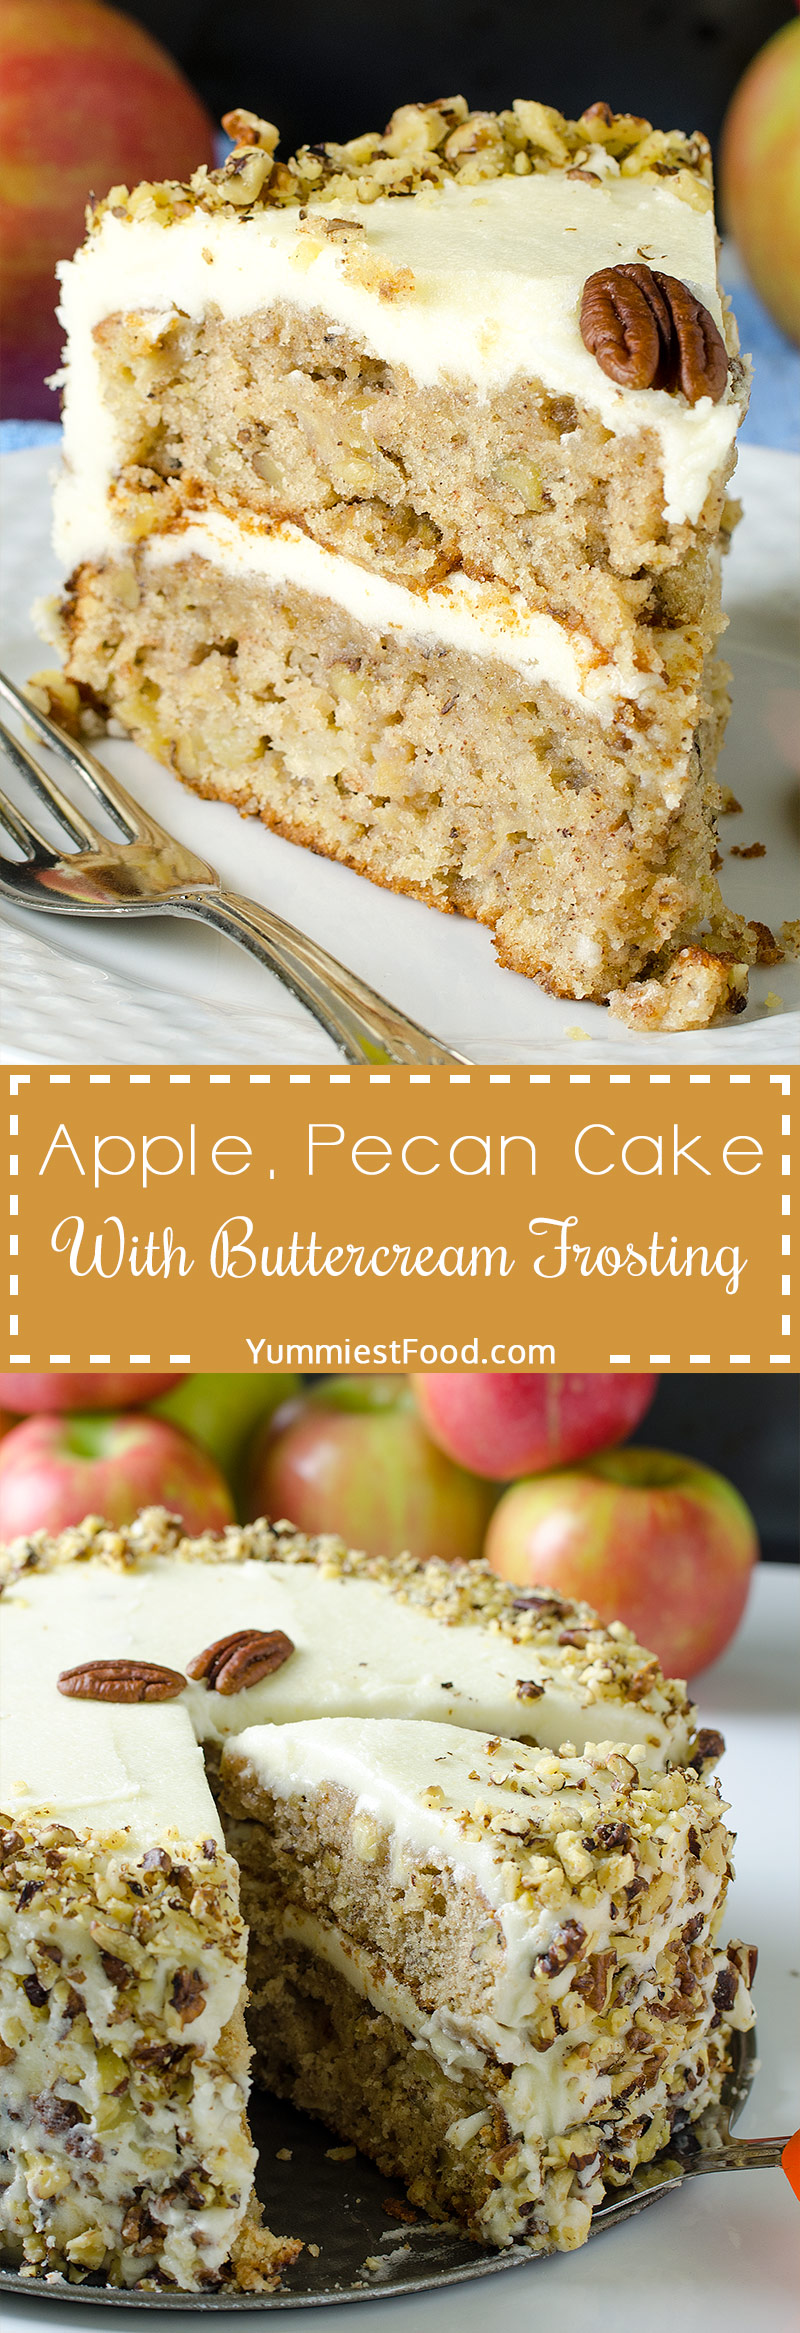 APPLE, PECAN CAKE WITH BUTTERCREAM FROSTING - Easy layer cake is fall treat with chopped apples, pecans and buttercream frosting